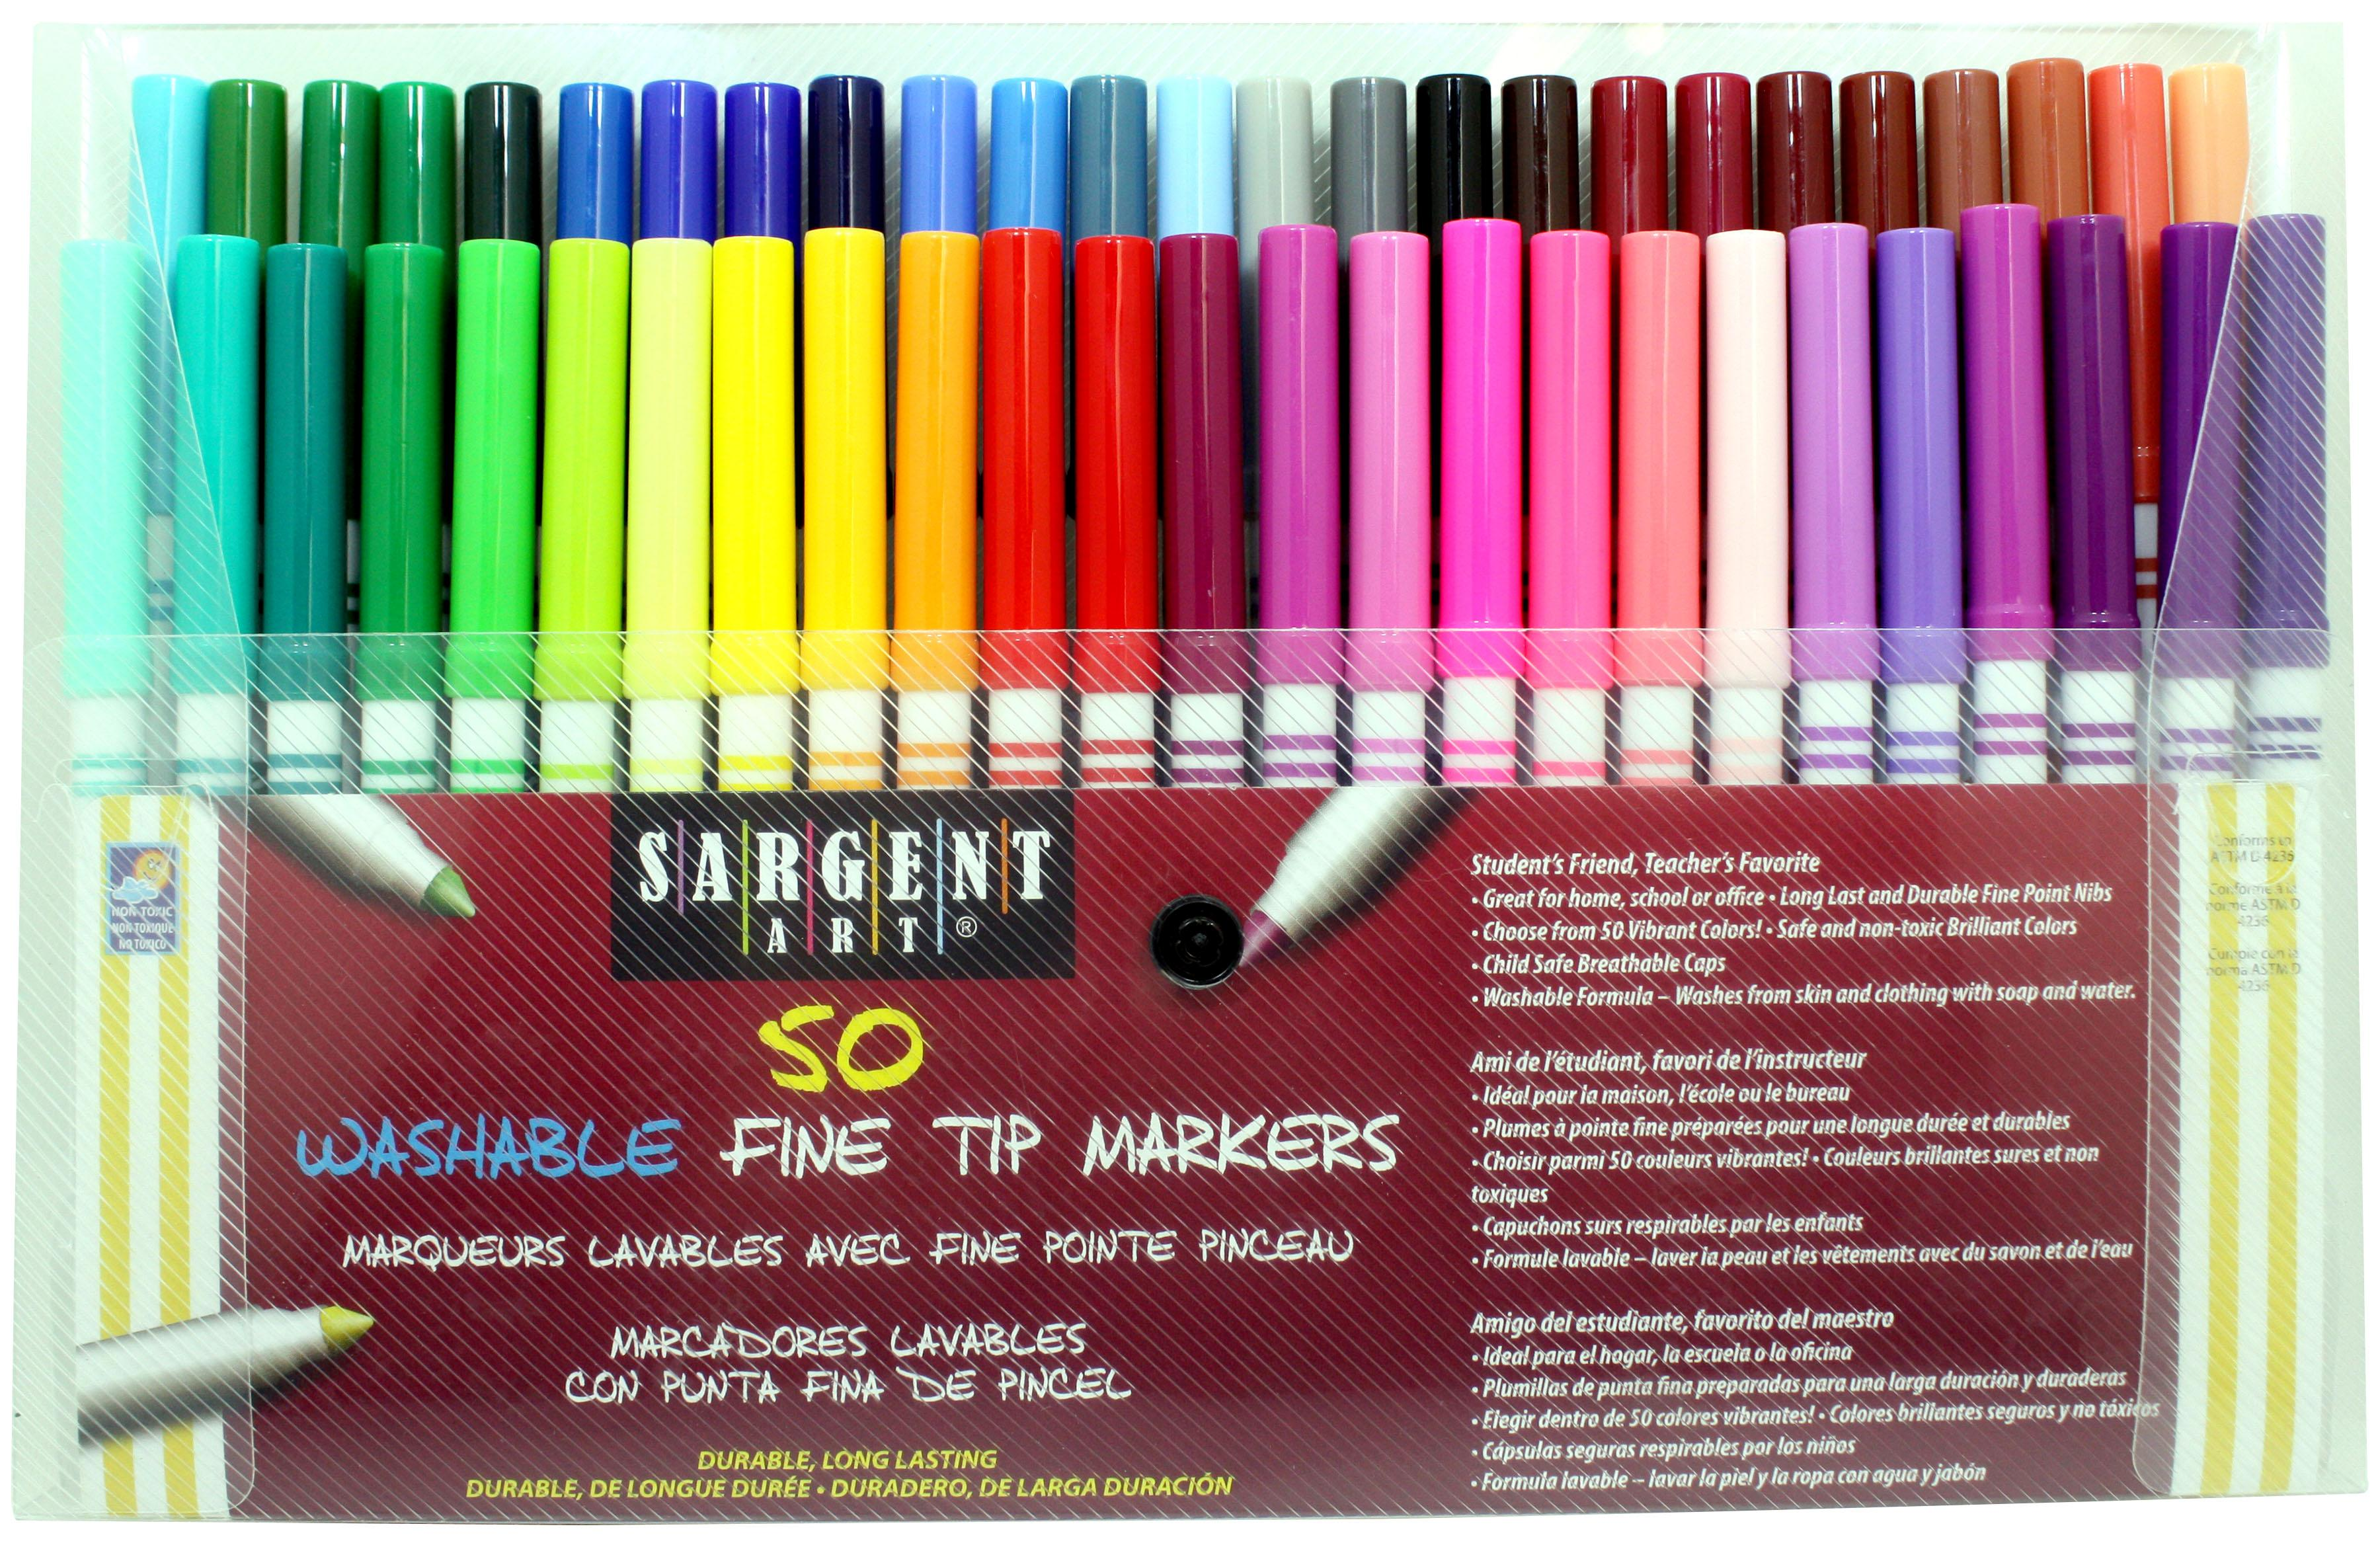 Color drawing pens for artists - View Larger